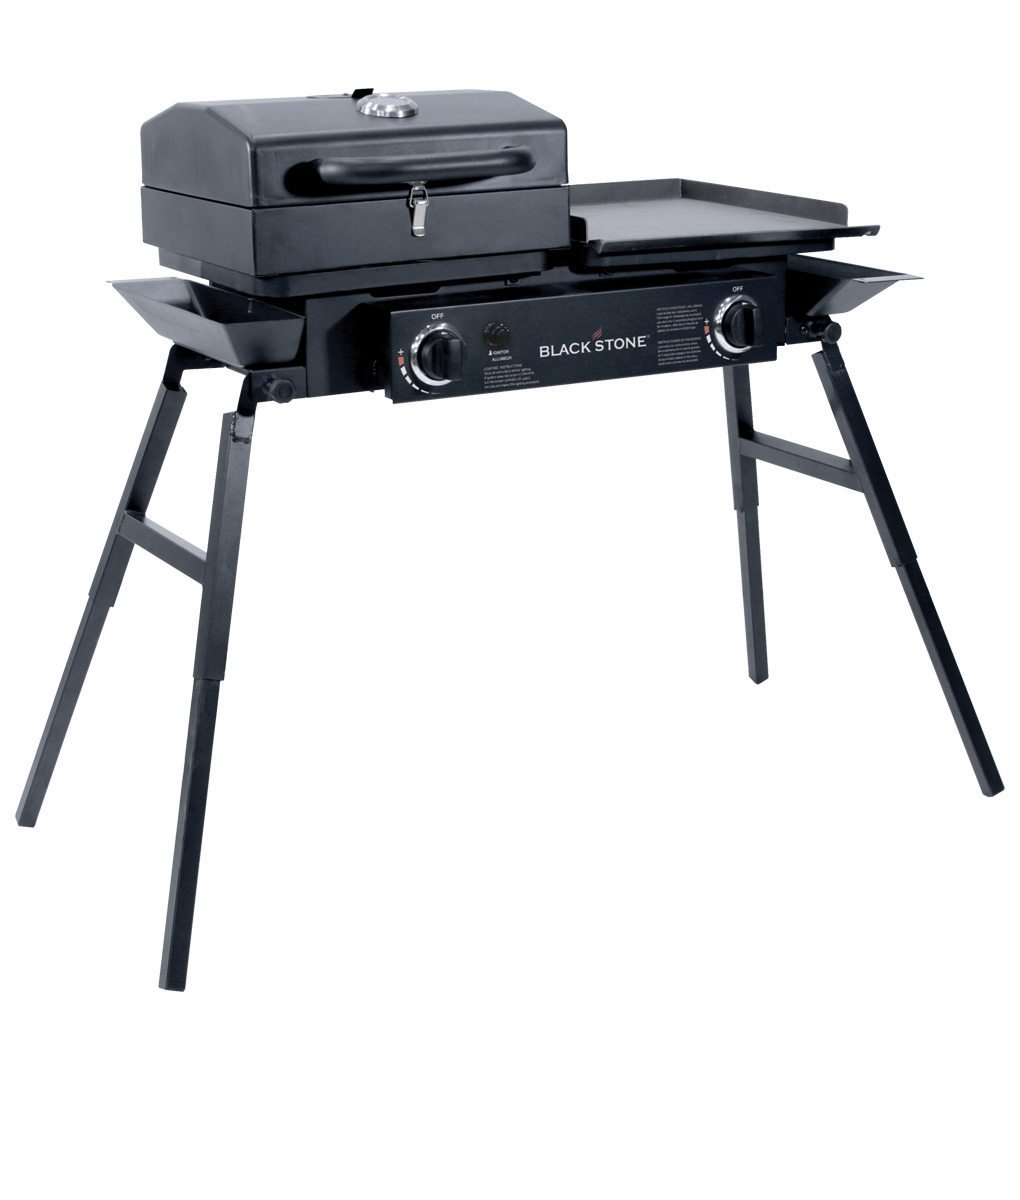 Best Gas Grill Under 200 Best Cheap Reviews